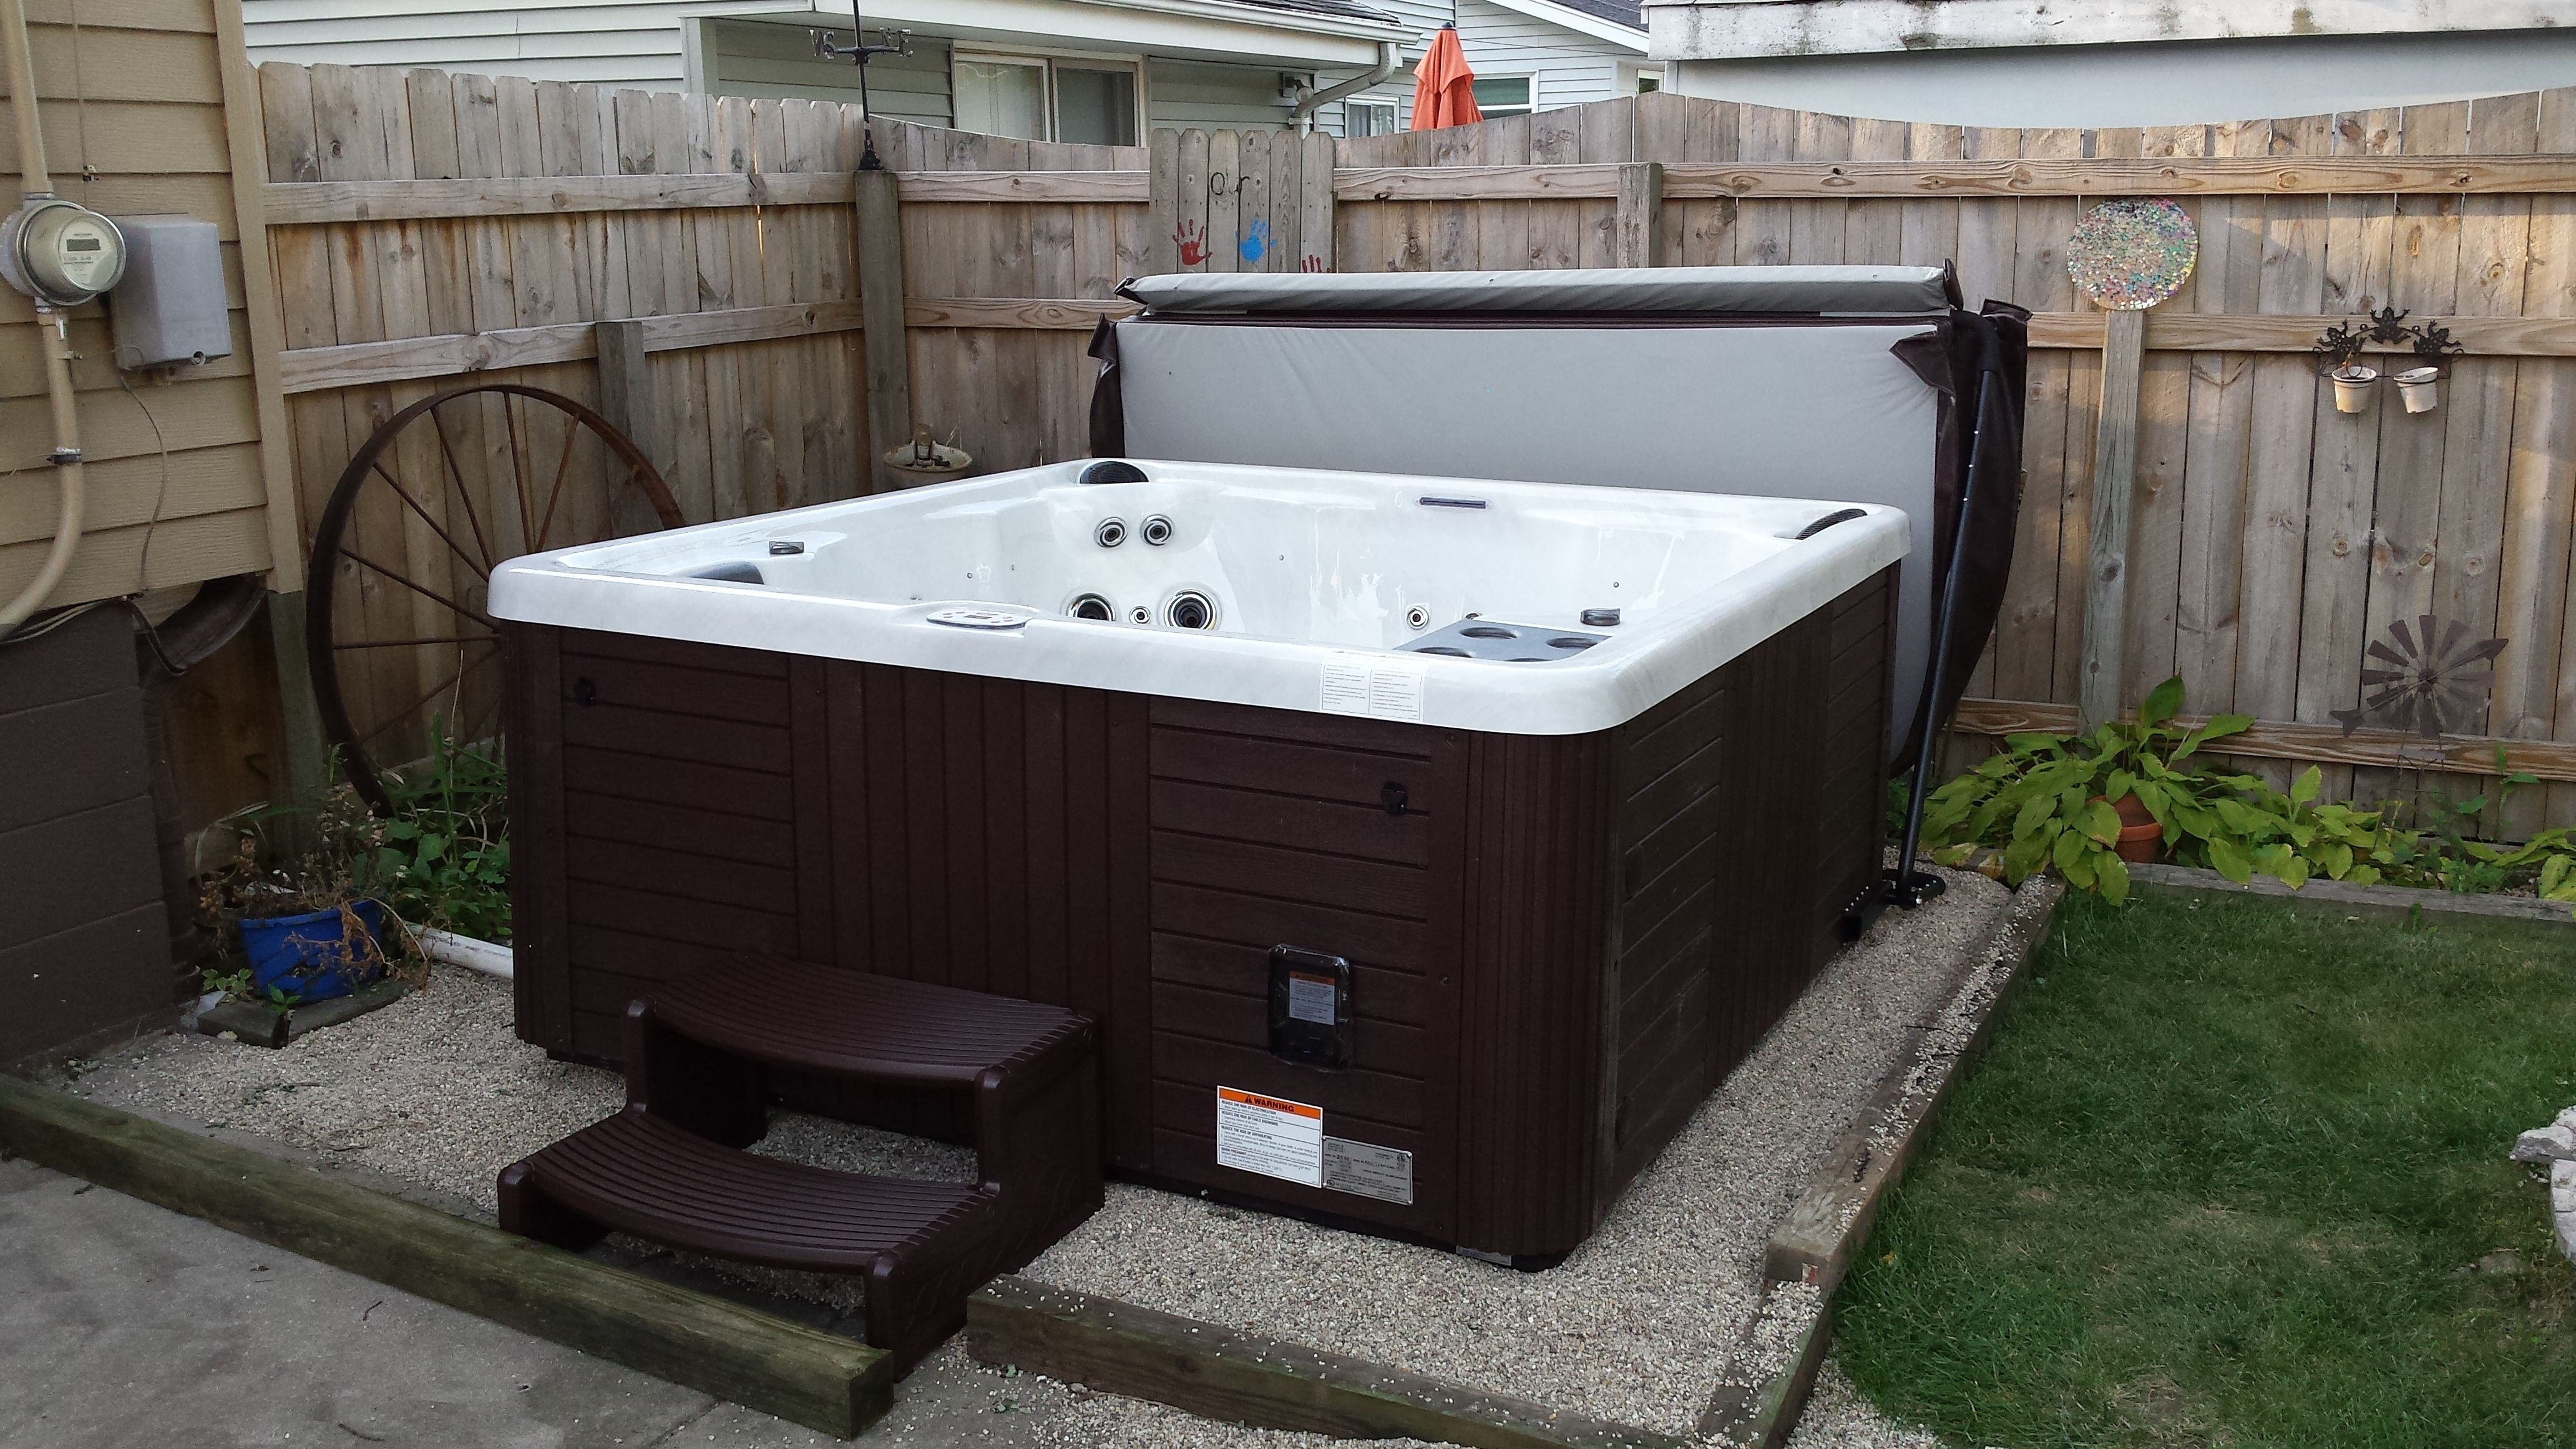 Here Is A Master Spas Legacy Installed On A Pea Gravel Patio